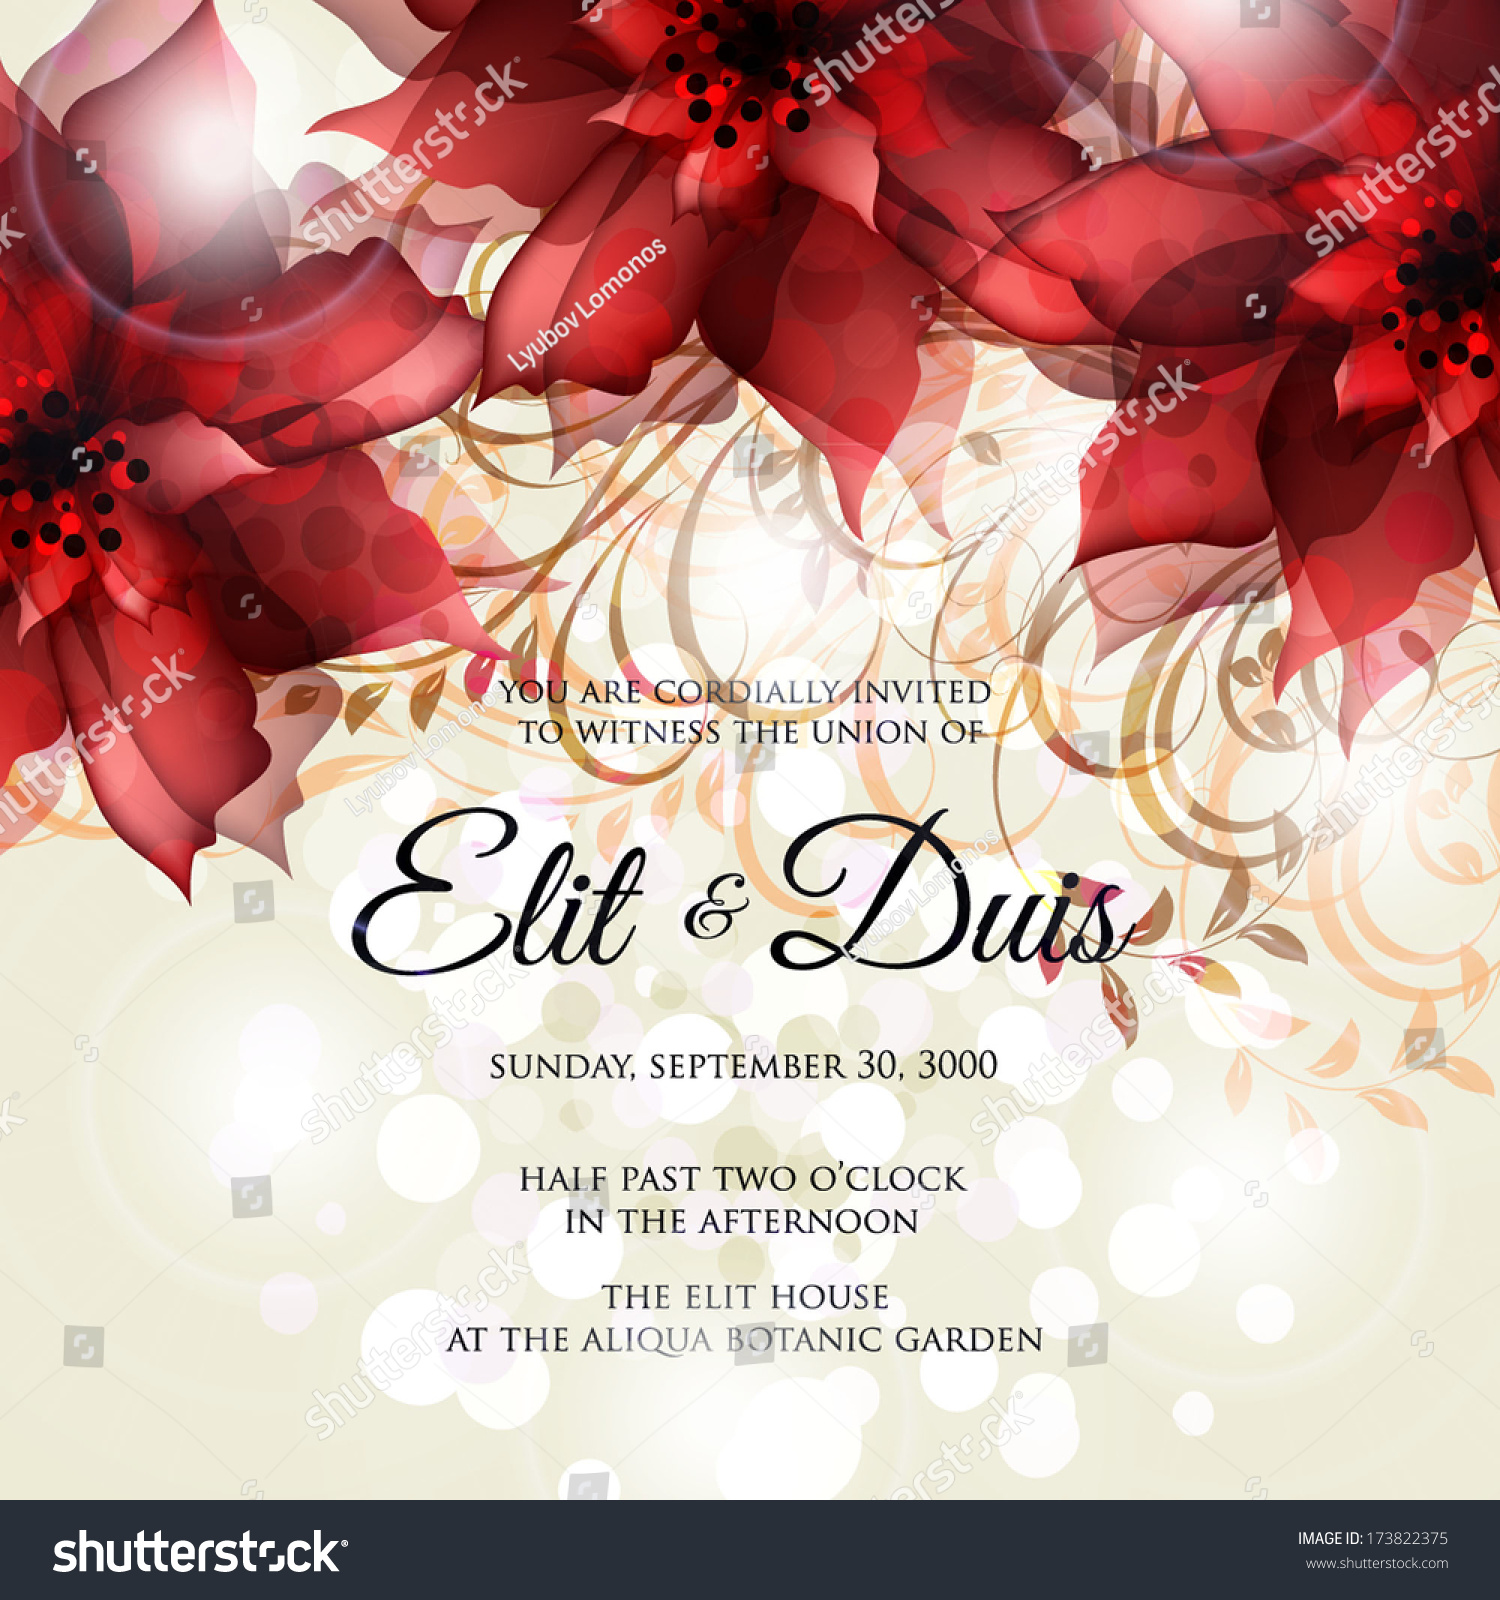 Wedding Invitation Card Stock Vector (Royalty Free) 173822375 ...